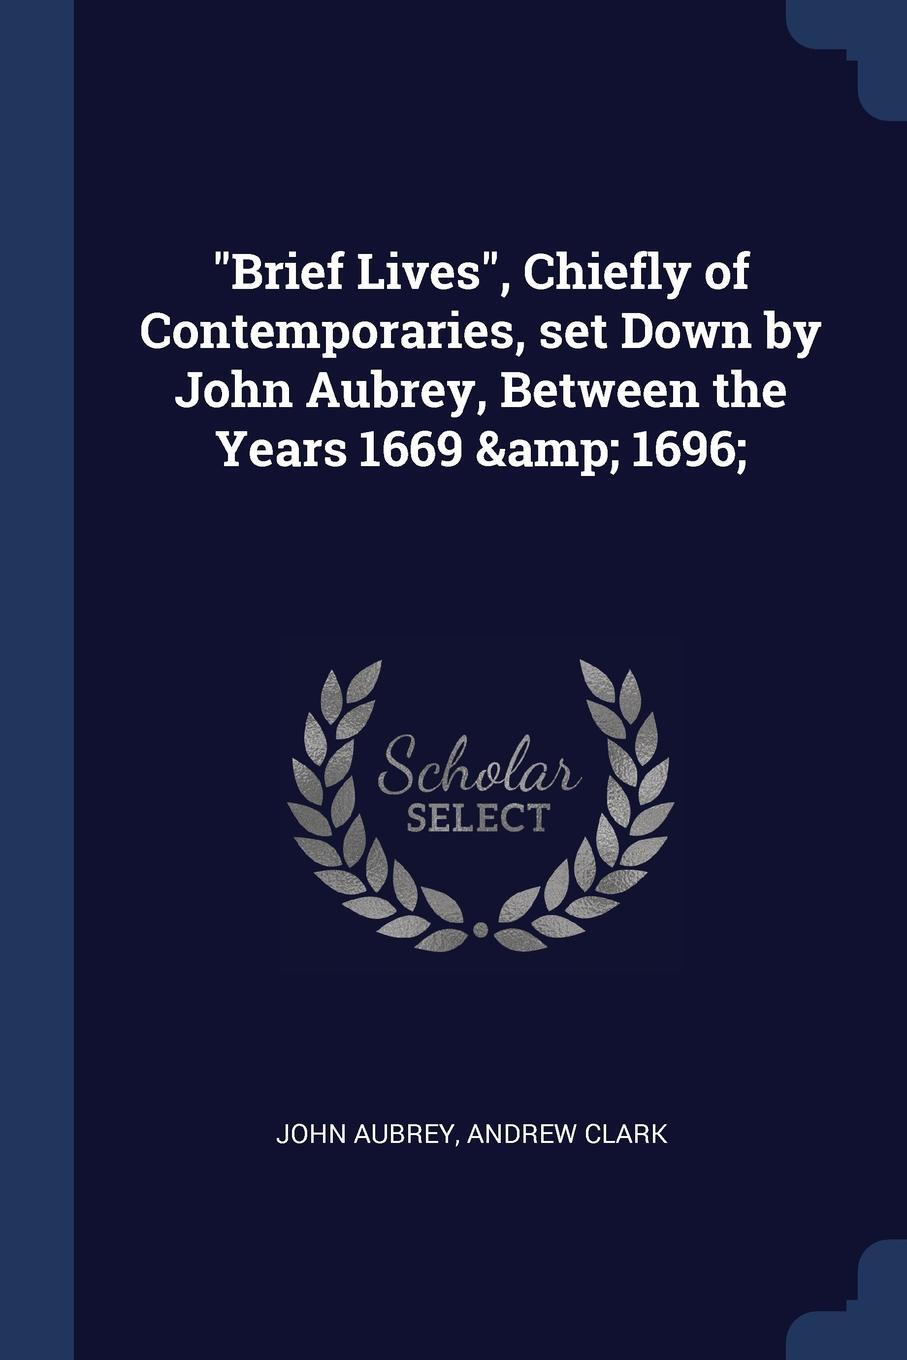 "John Aubrey, Andrew Clark. ""Brief Lives"", Chiefly of Contemporaries, set Down by John Aubrey, Between the Years 1669 & 1696;"